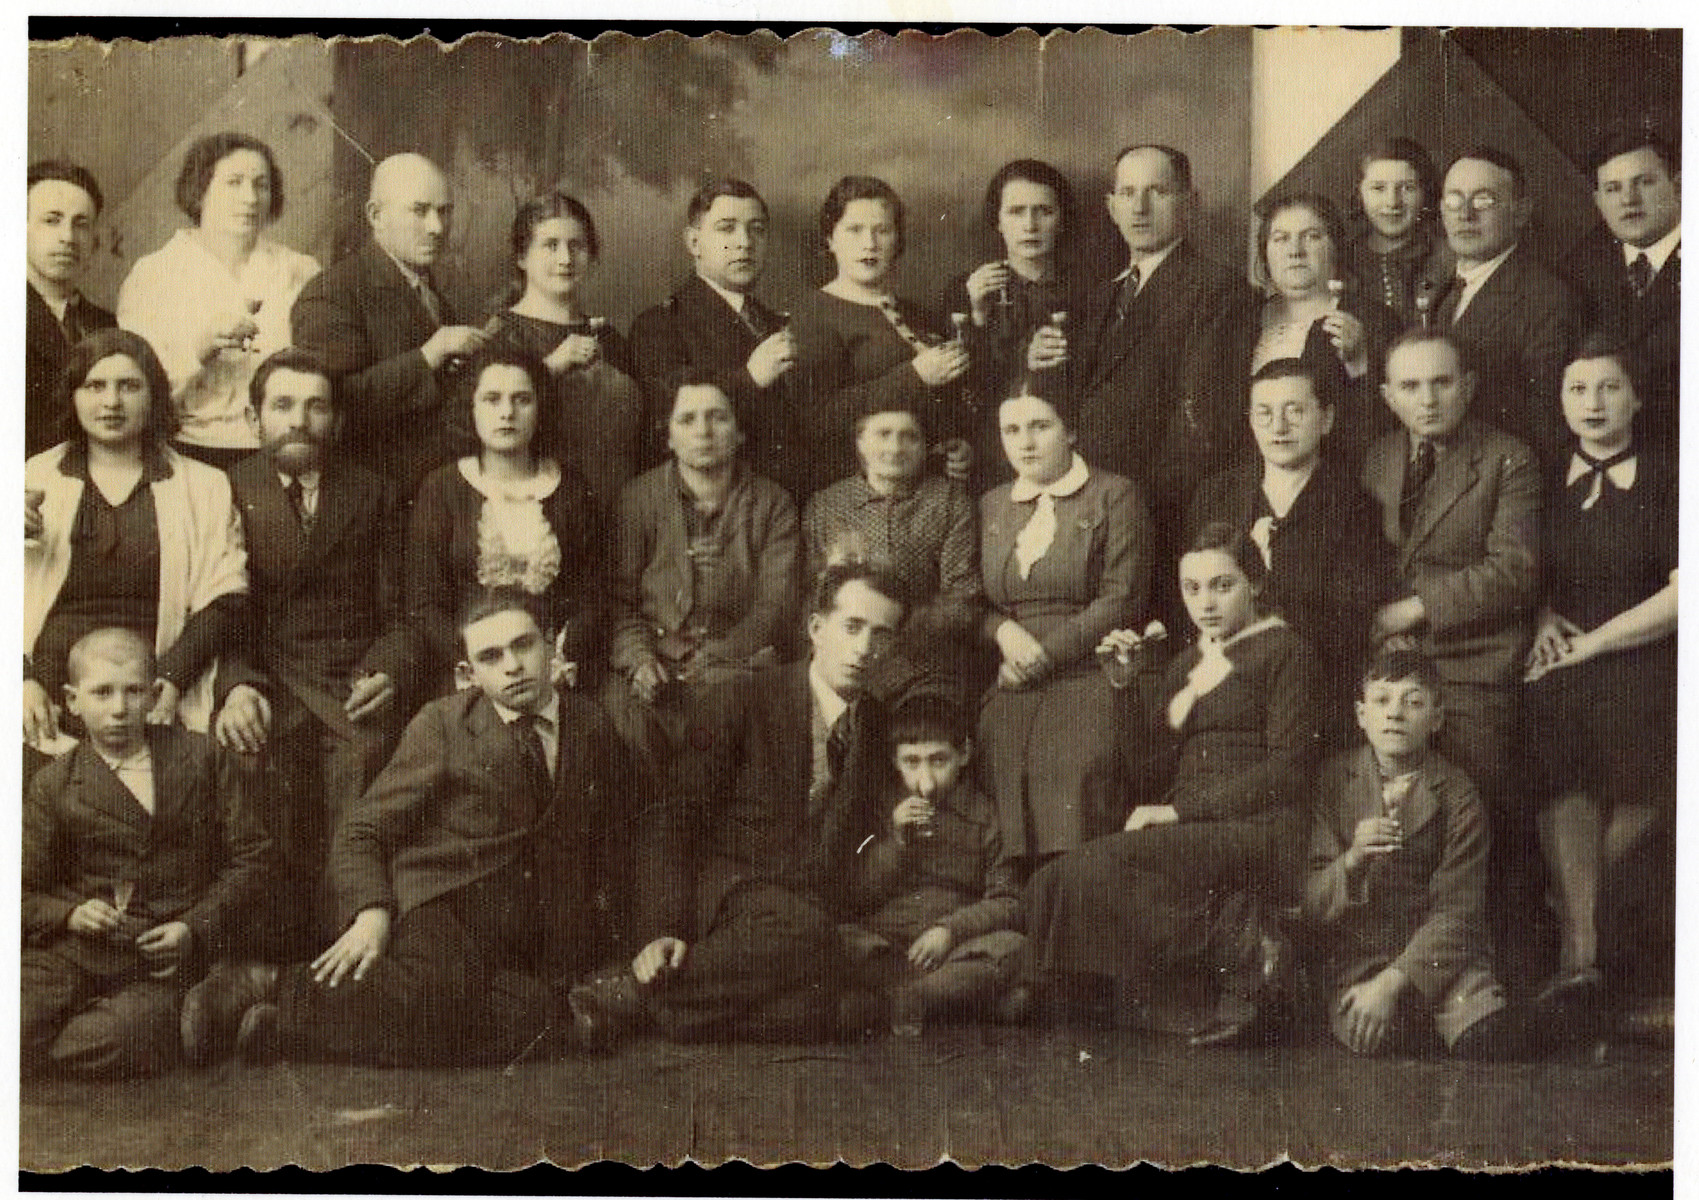 The extended maternal family of Sara Borzykowski celebrate the impending emigration of a cousin.    Pictured are members of the Krause family and Wilhelm families (Sara Fogelman's maternal relatives).  Among those pictured are Hersh Fogelman (5th from left, top row) and his wife Sara Fogelman standing next to him.  Wolf Borzykowski (Sara's brother) is standing on the top row, far right.